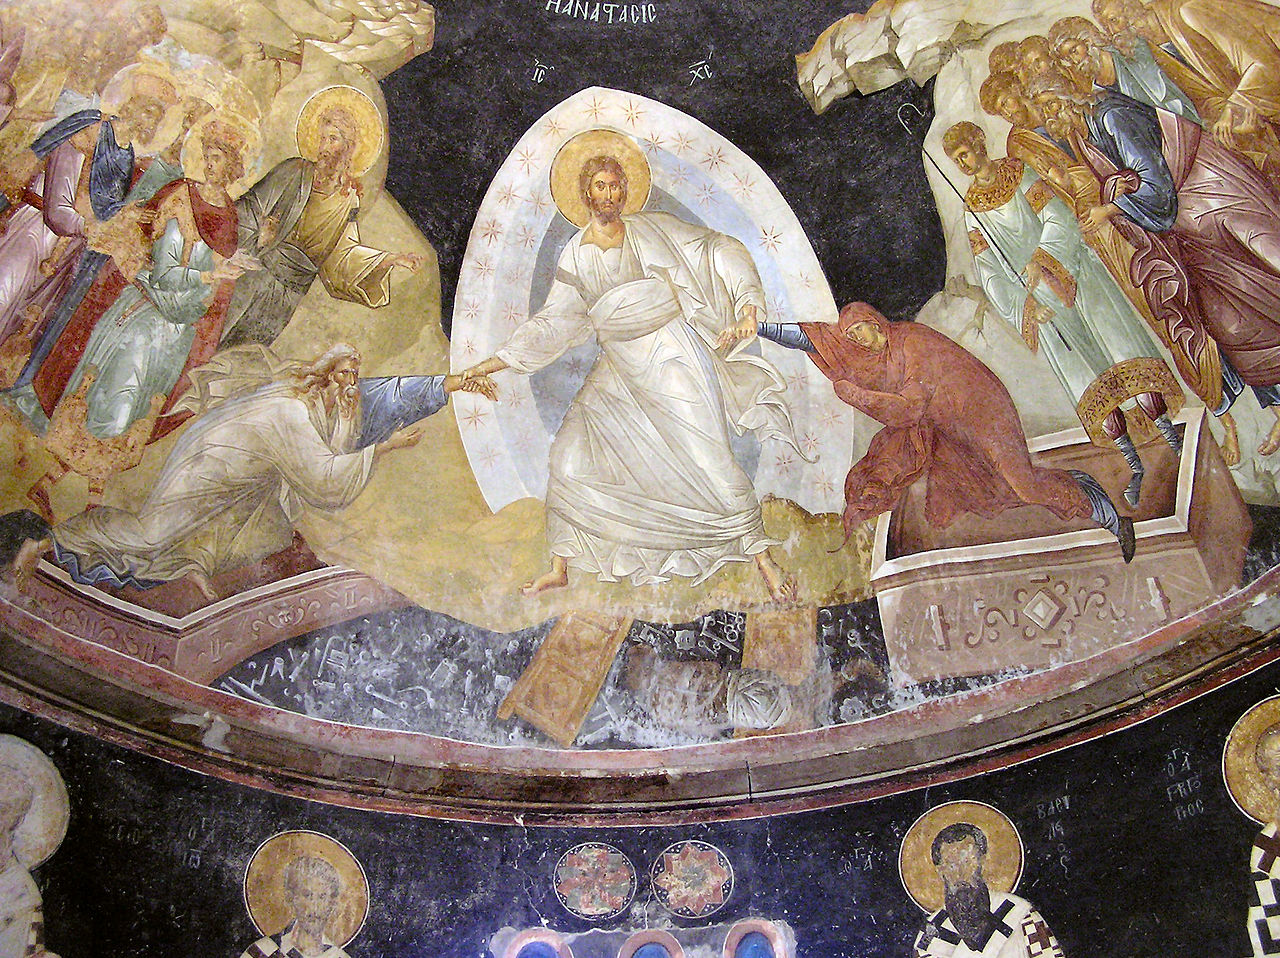 The Resurrection Icon, or the Harrowing of Hades